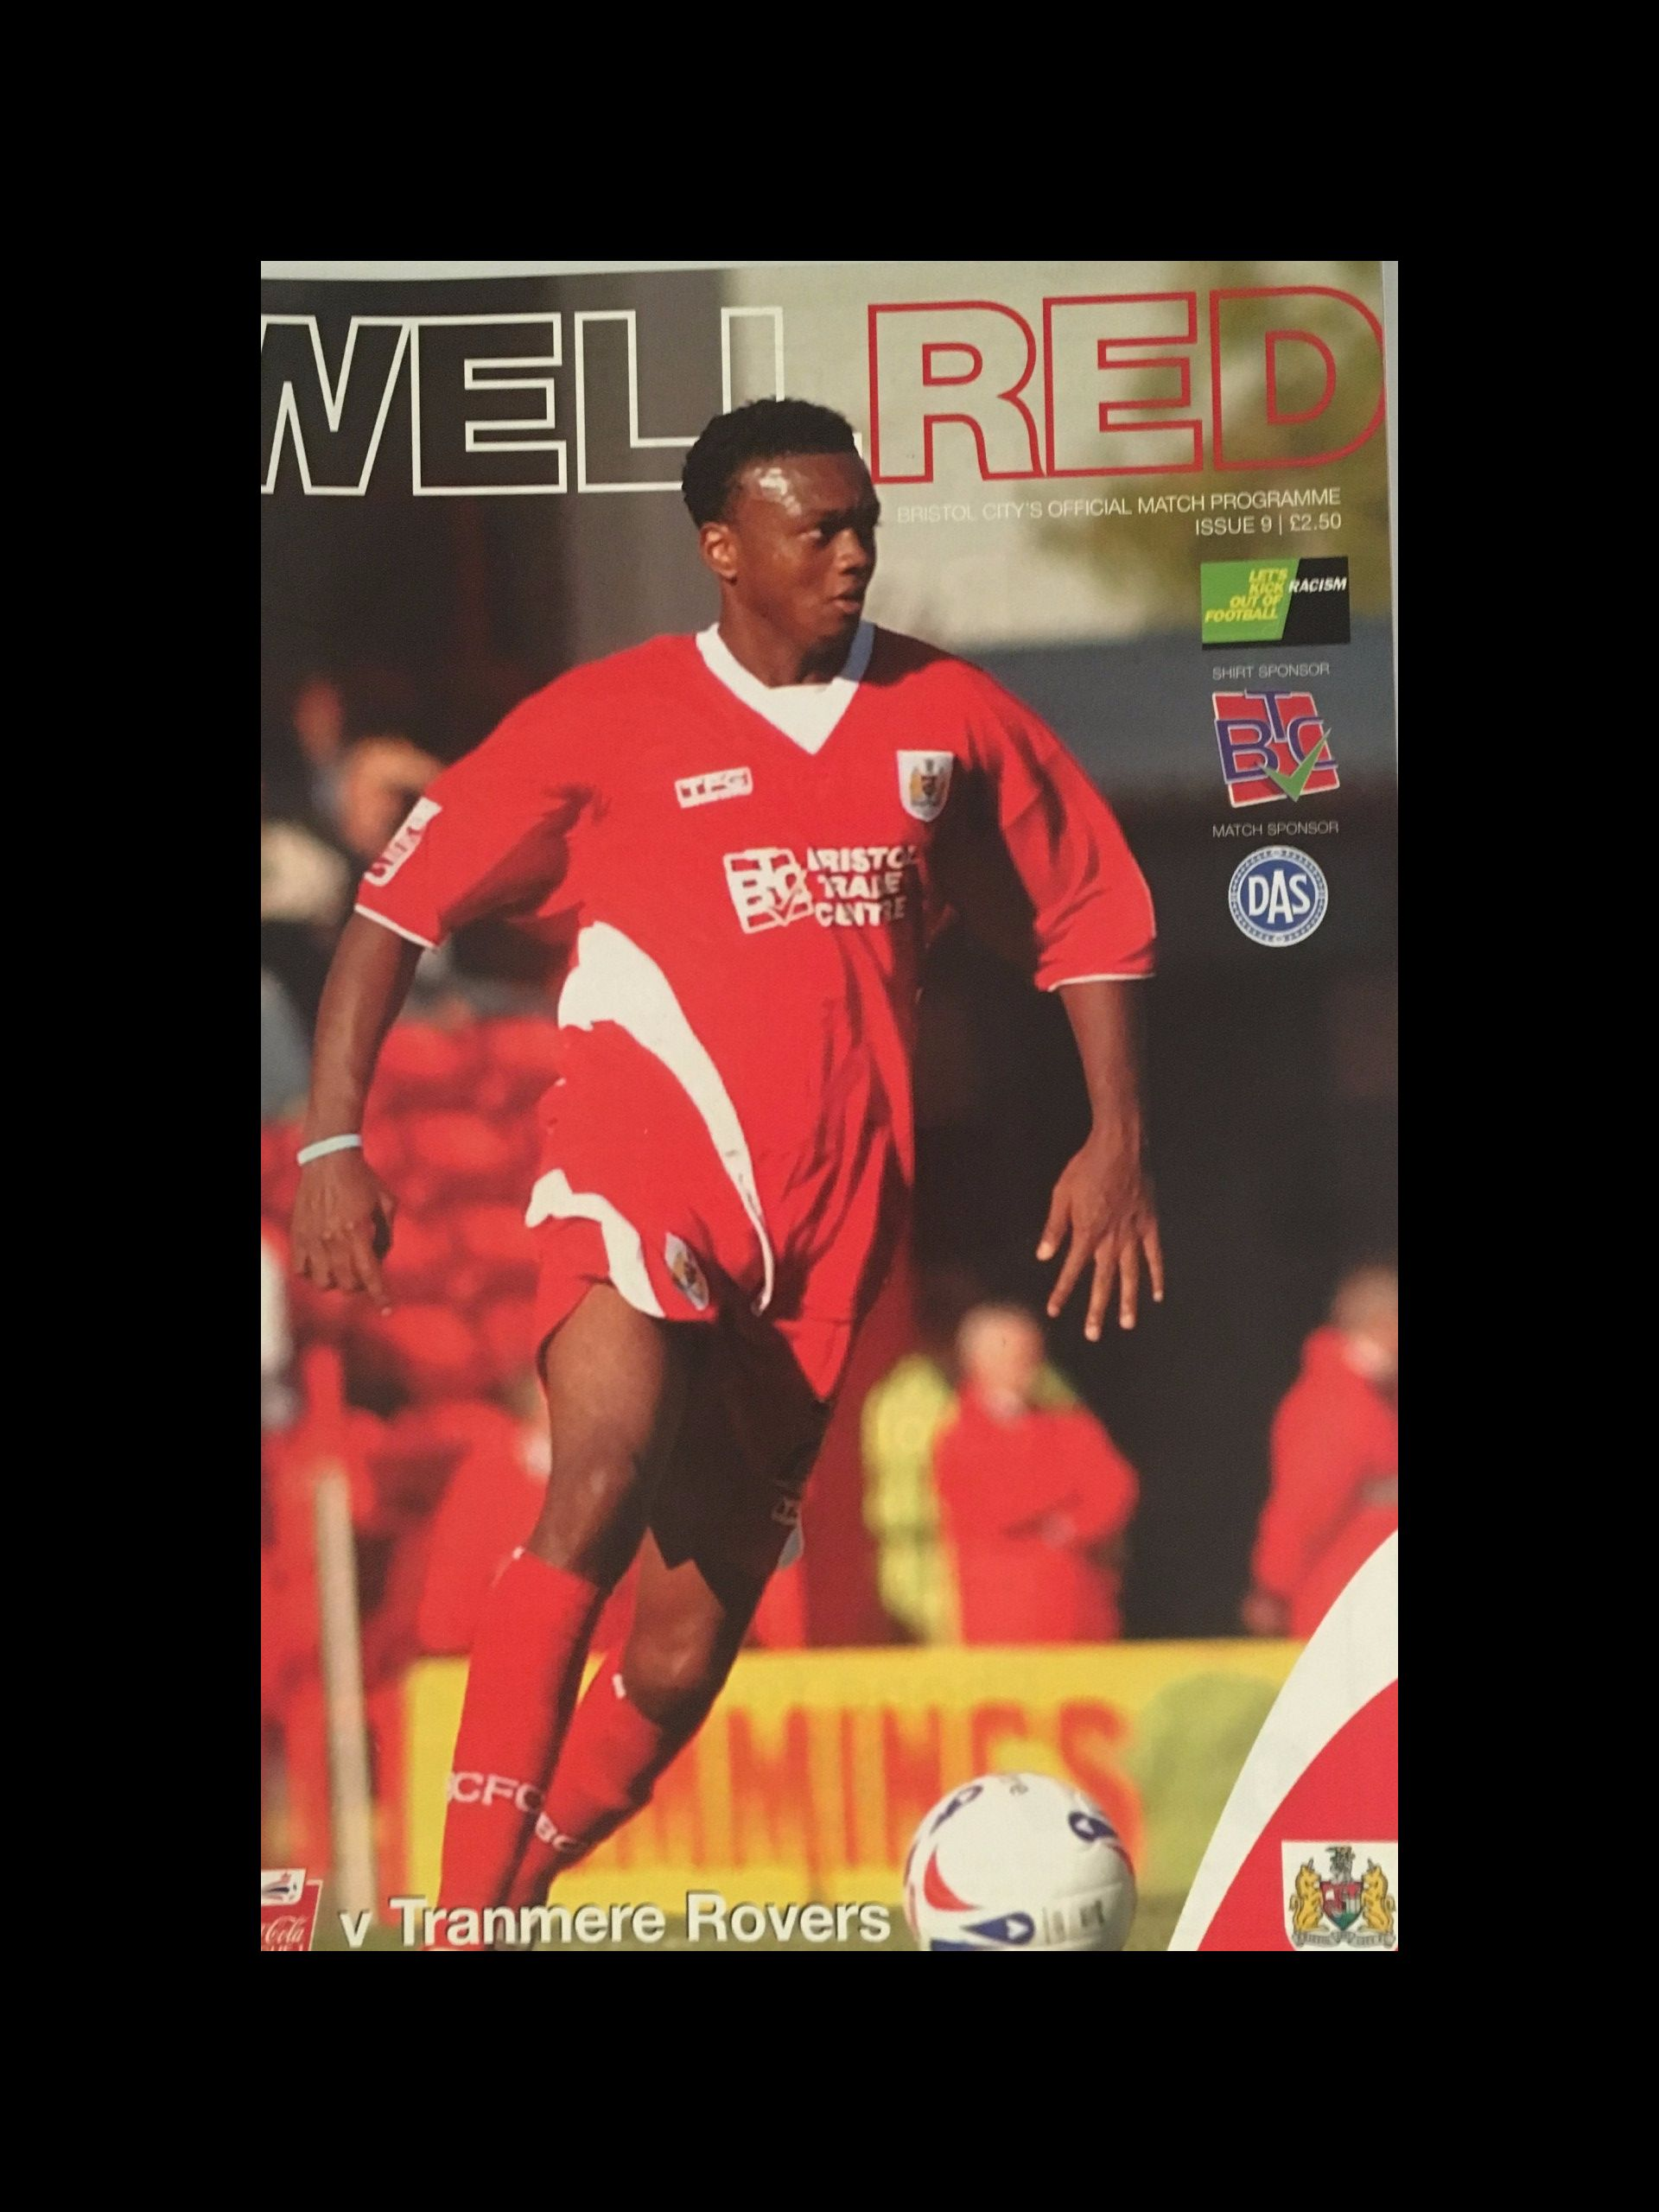 Bristol City v Tranmere Rovers 15-10-2005 Programme